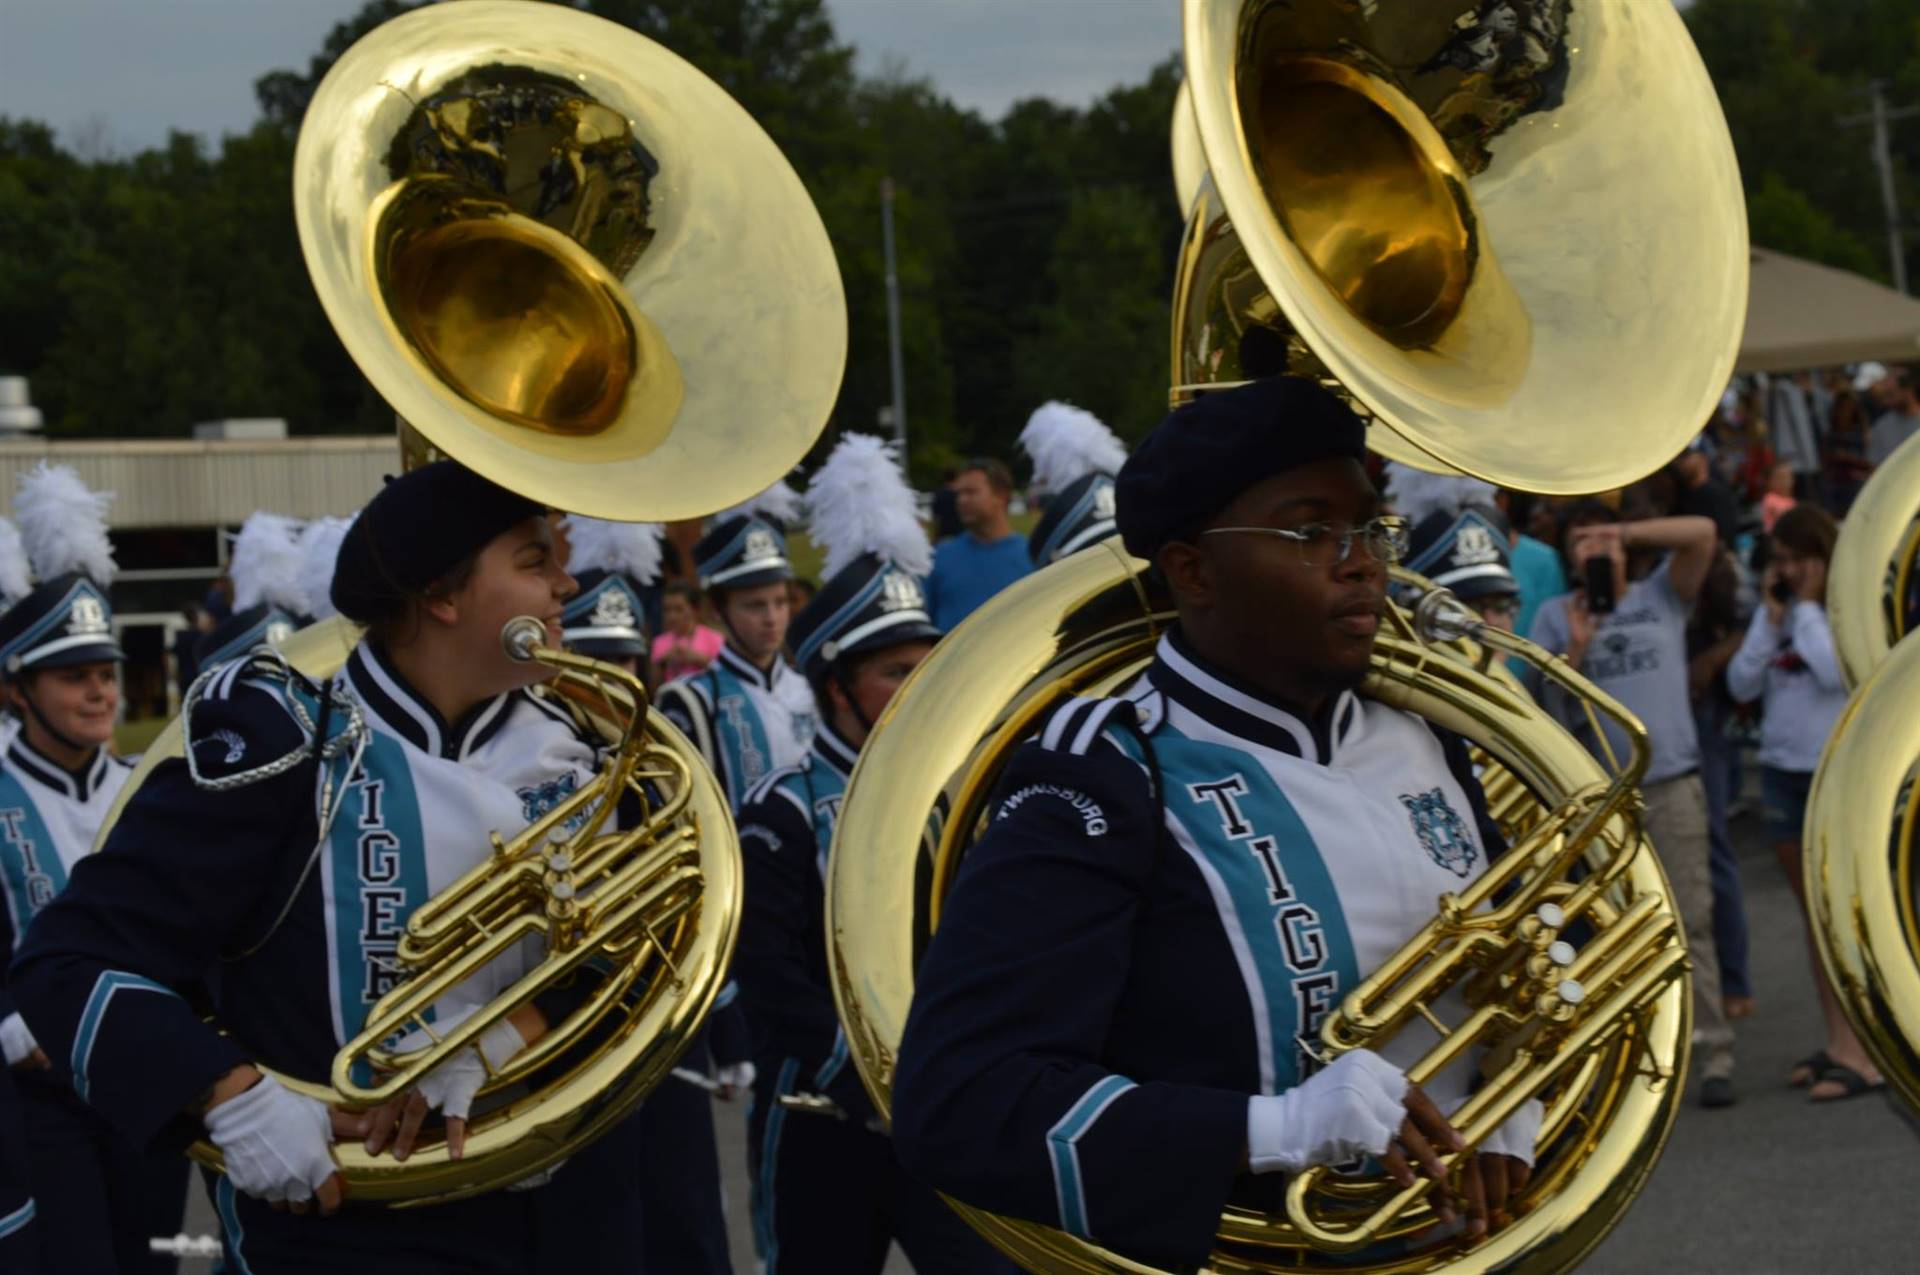 Tuba players marching in uniform